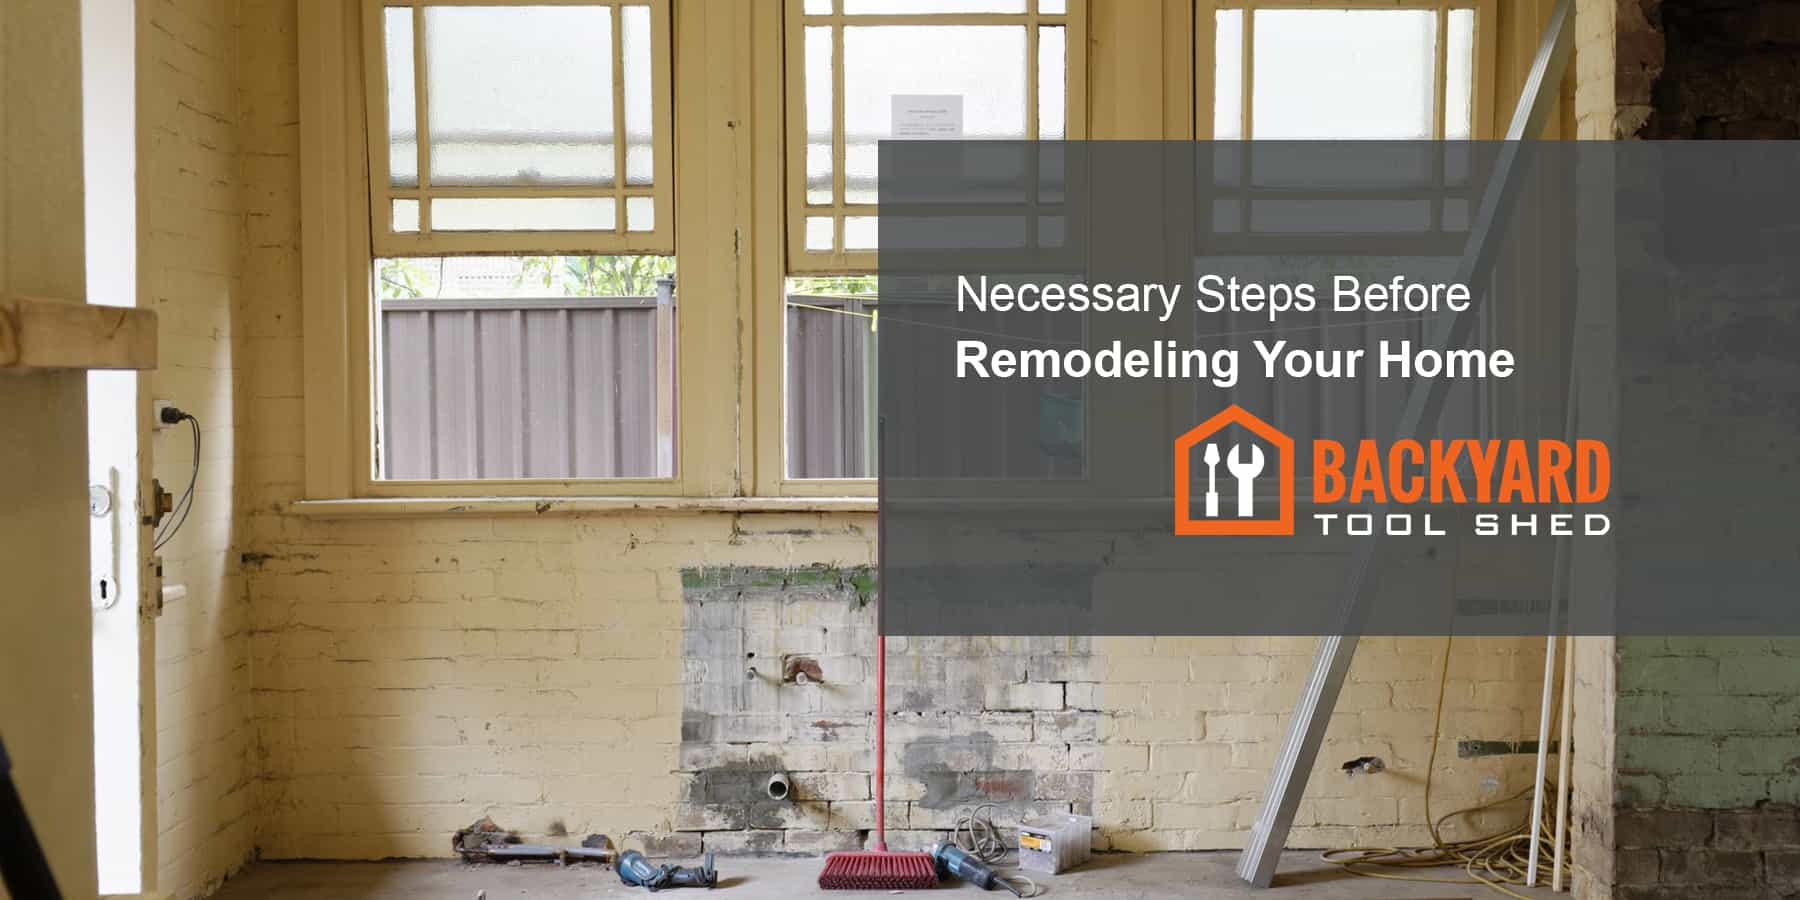 Necessary Steps Before Remodeling Your Home